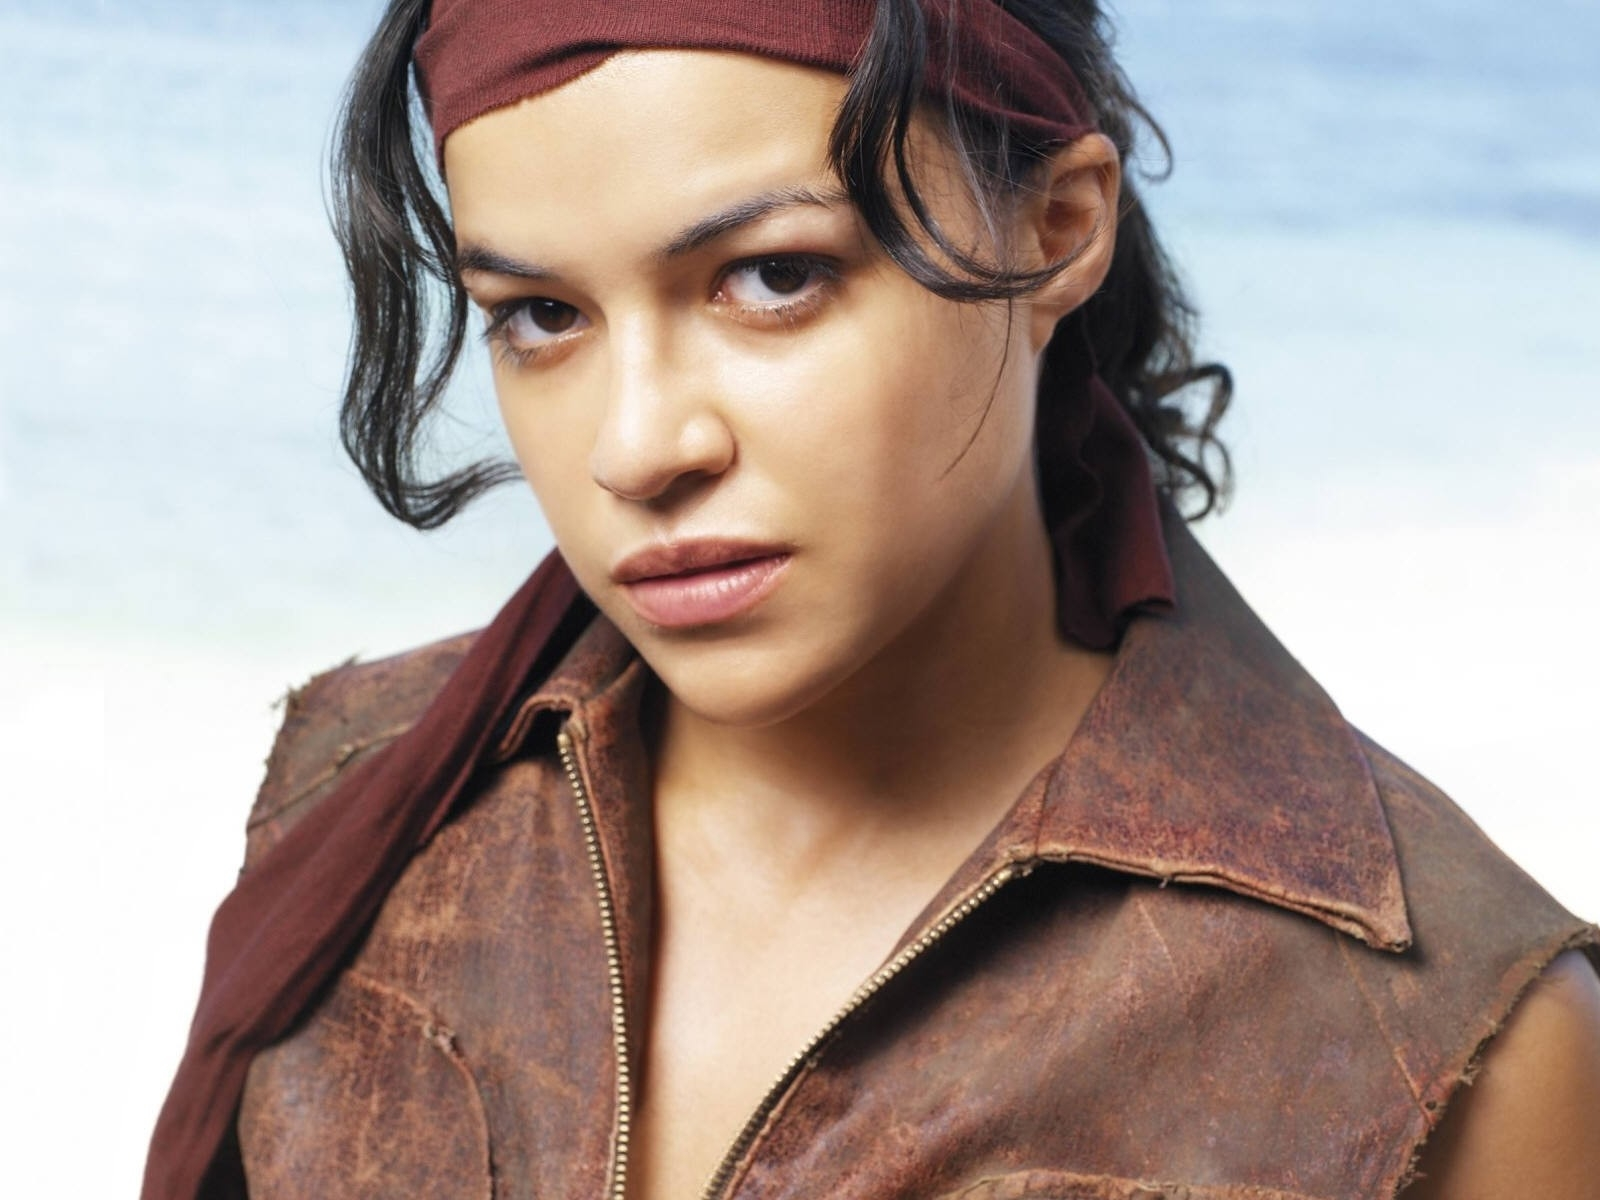 Wallpaper di Michelle Rodriguez - 6